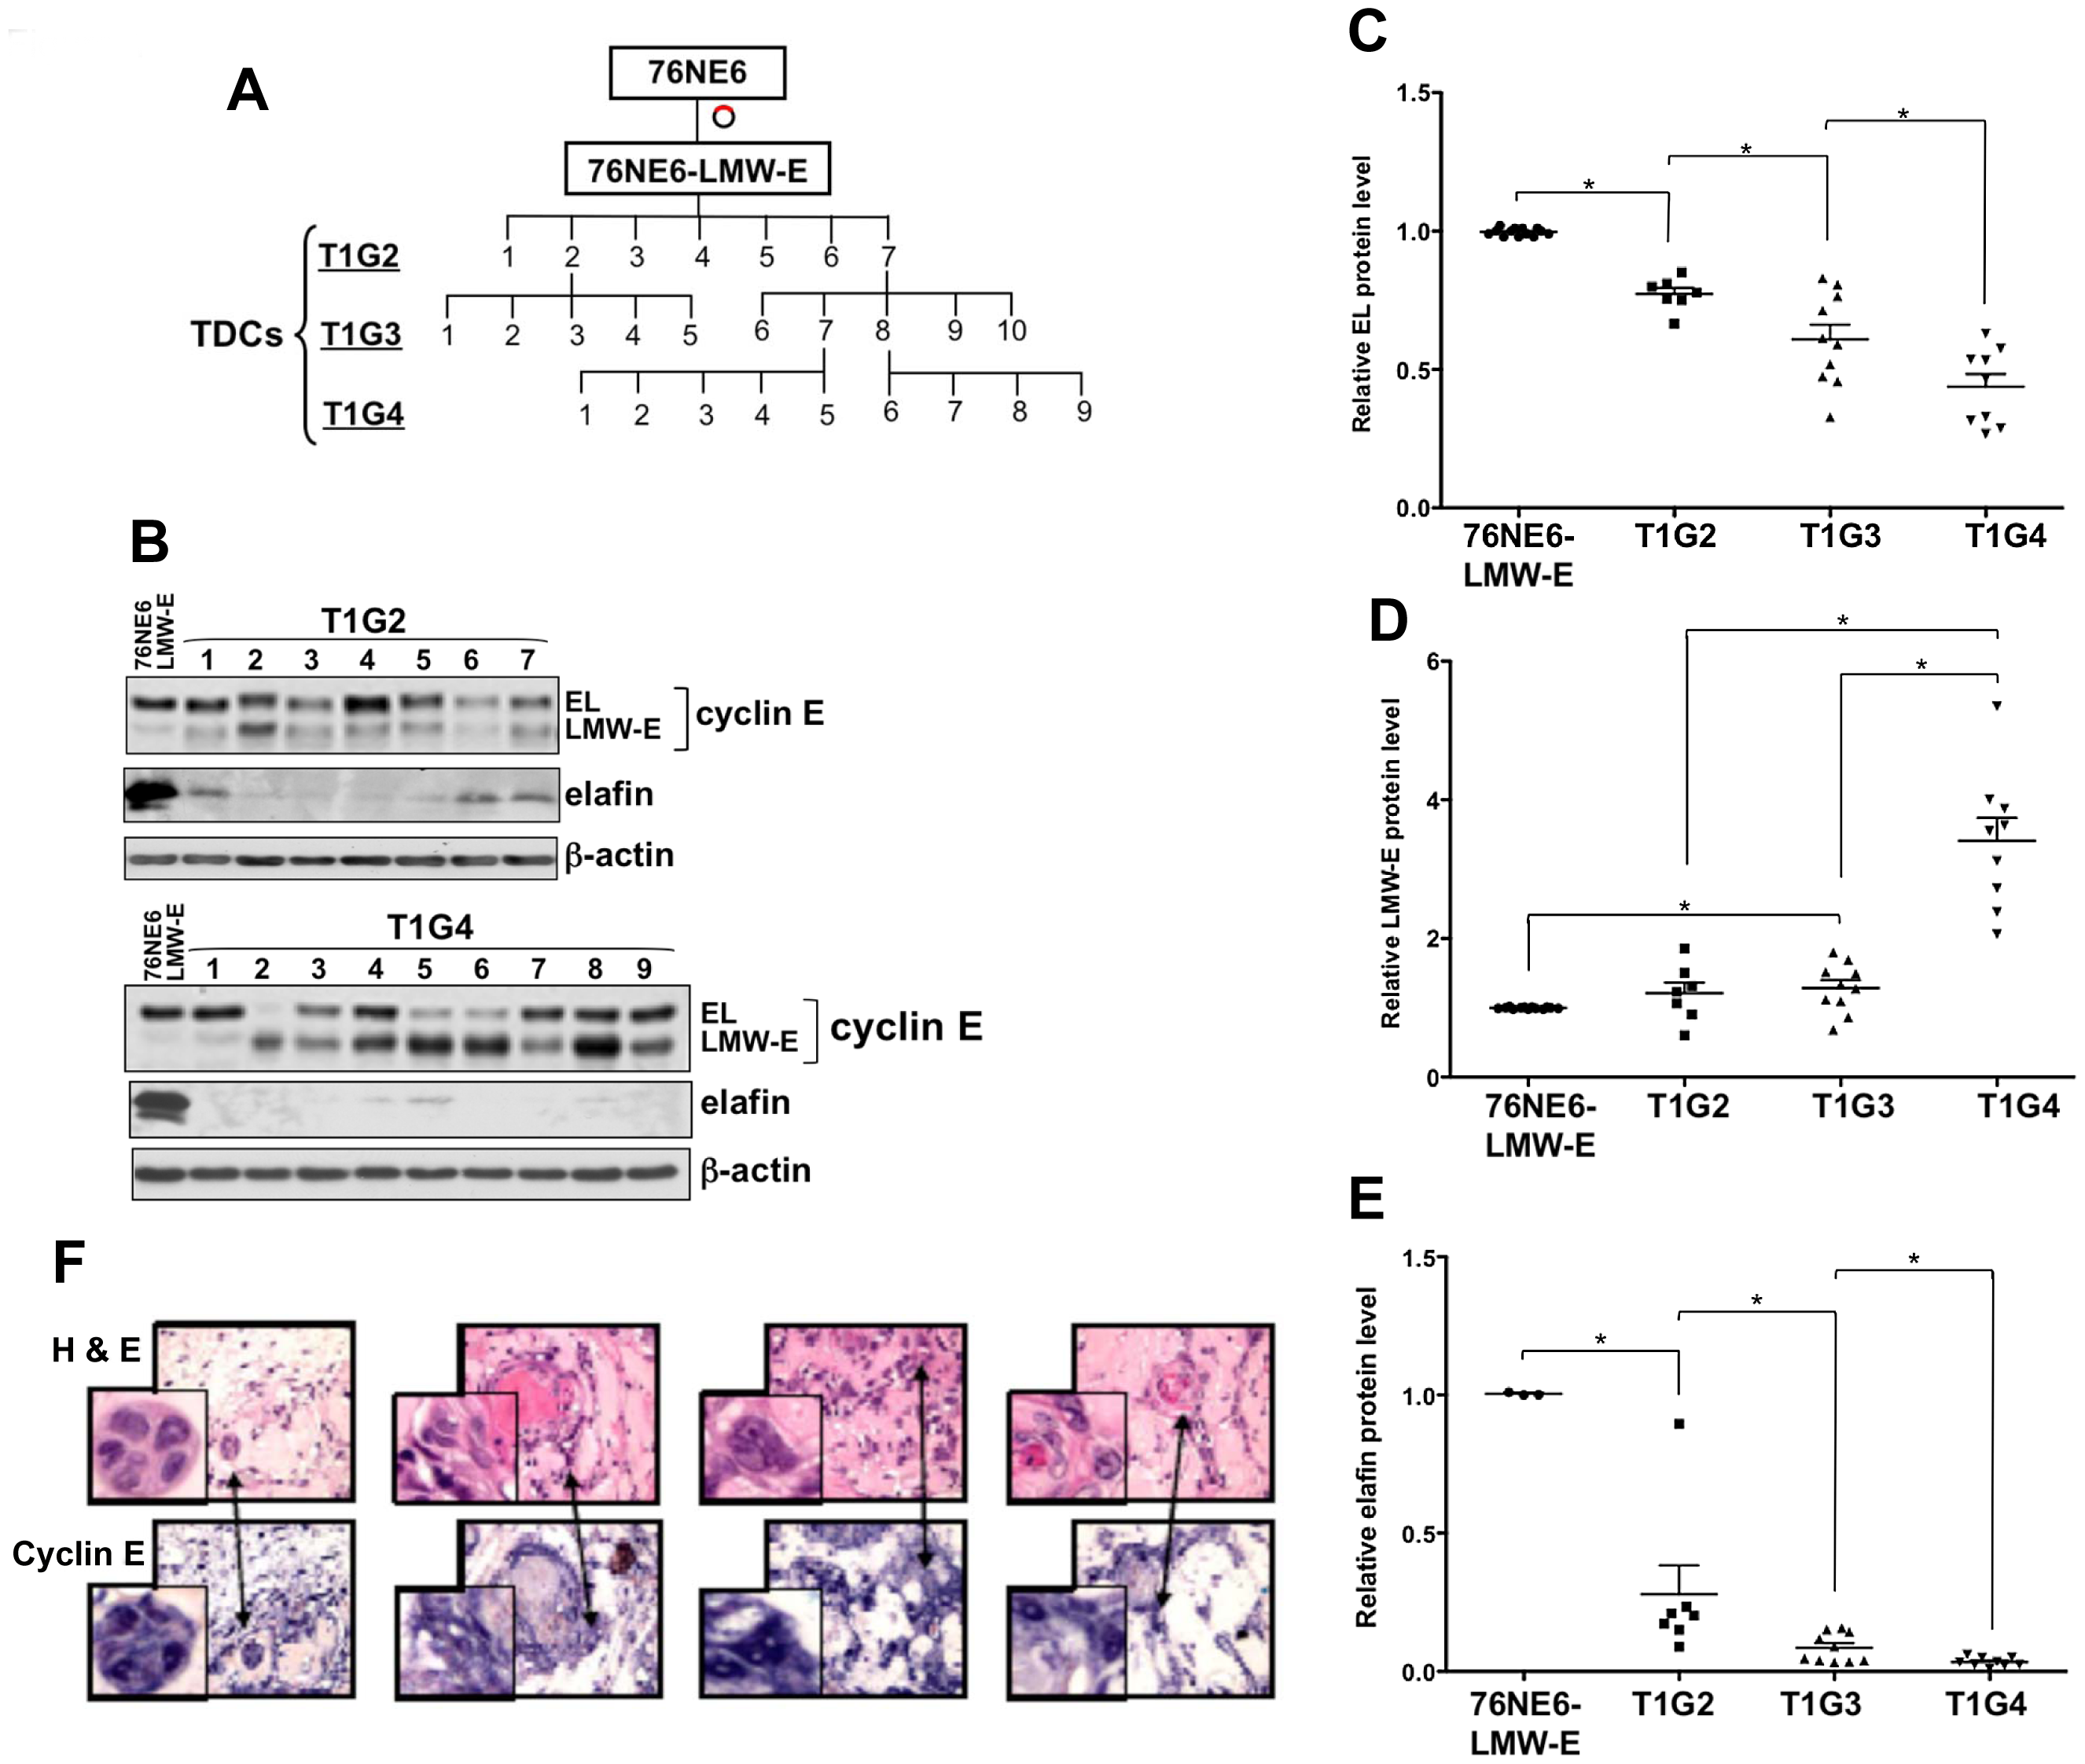 LMW-E renders hMECs tumorigenic, and LMW-E expression is selected with increased <i>in vivo</i> passaging.